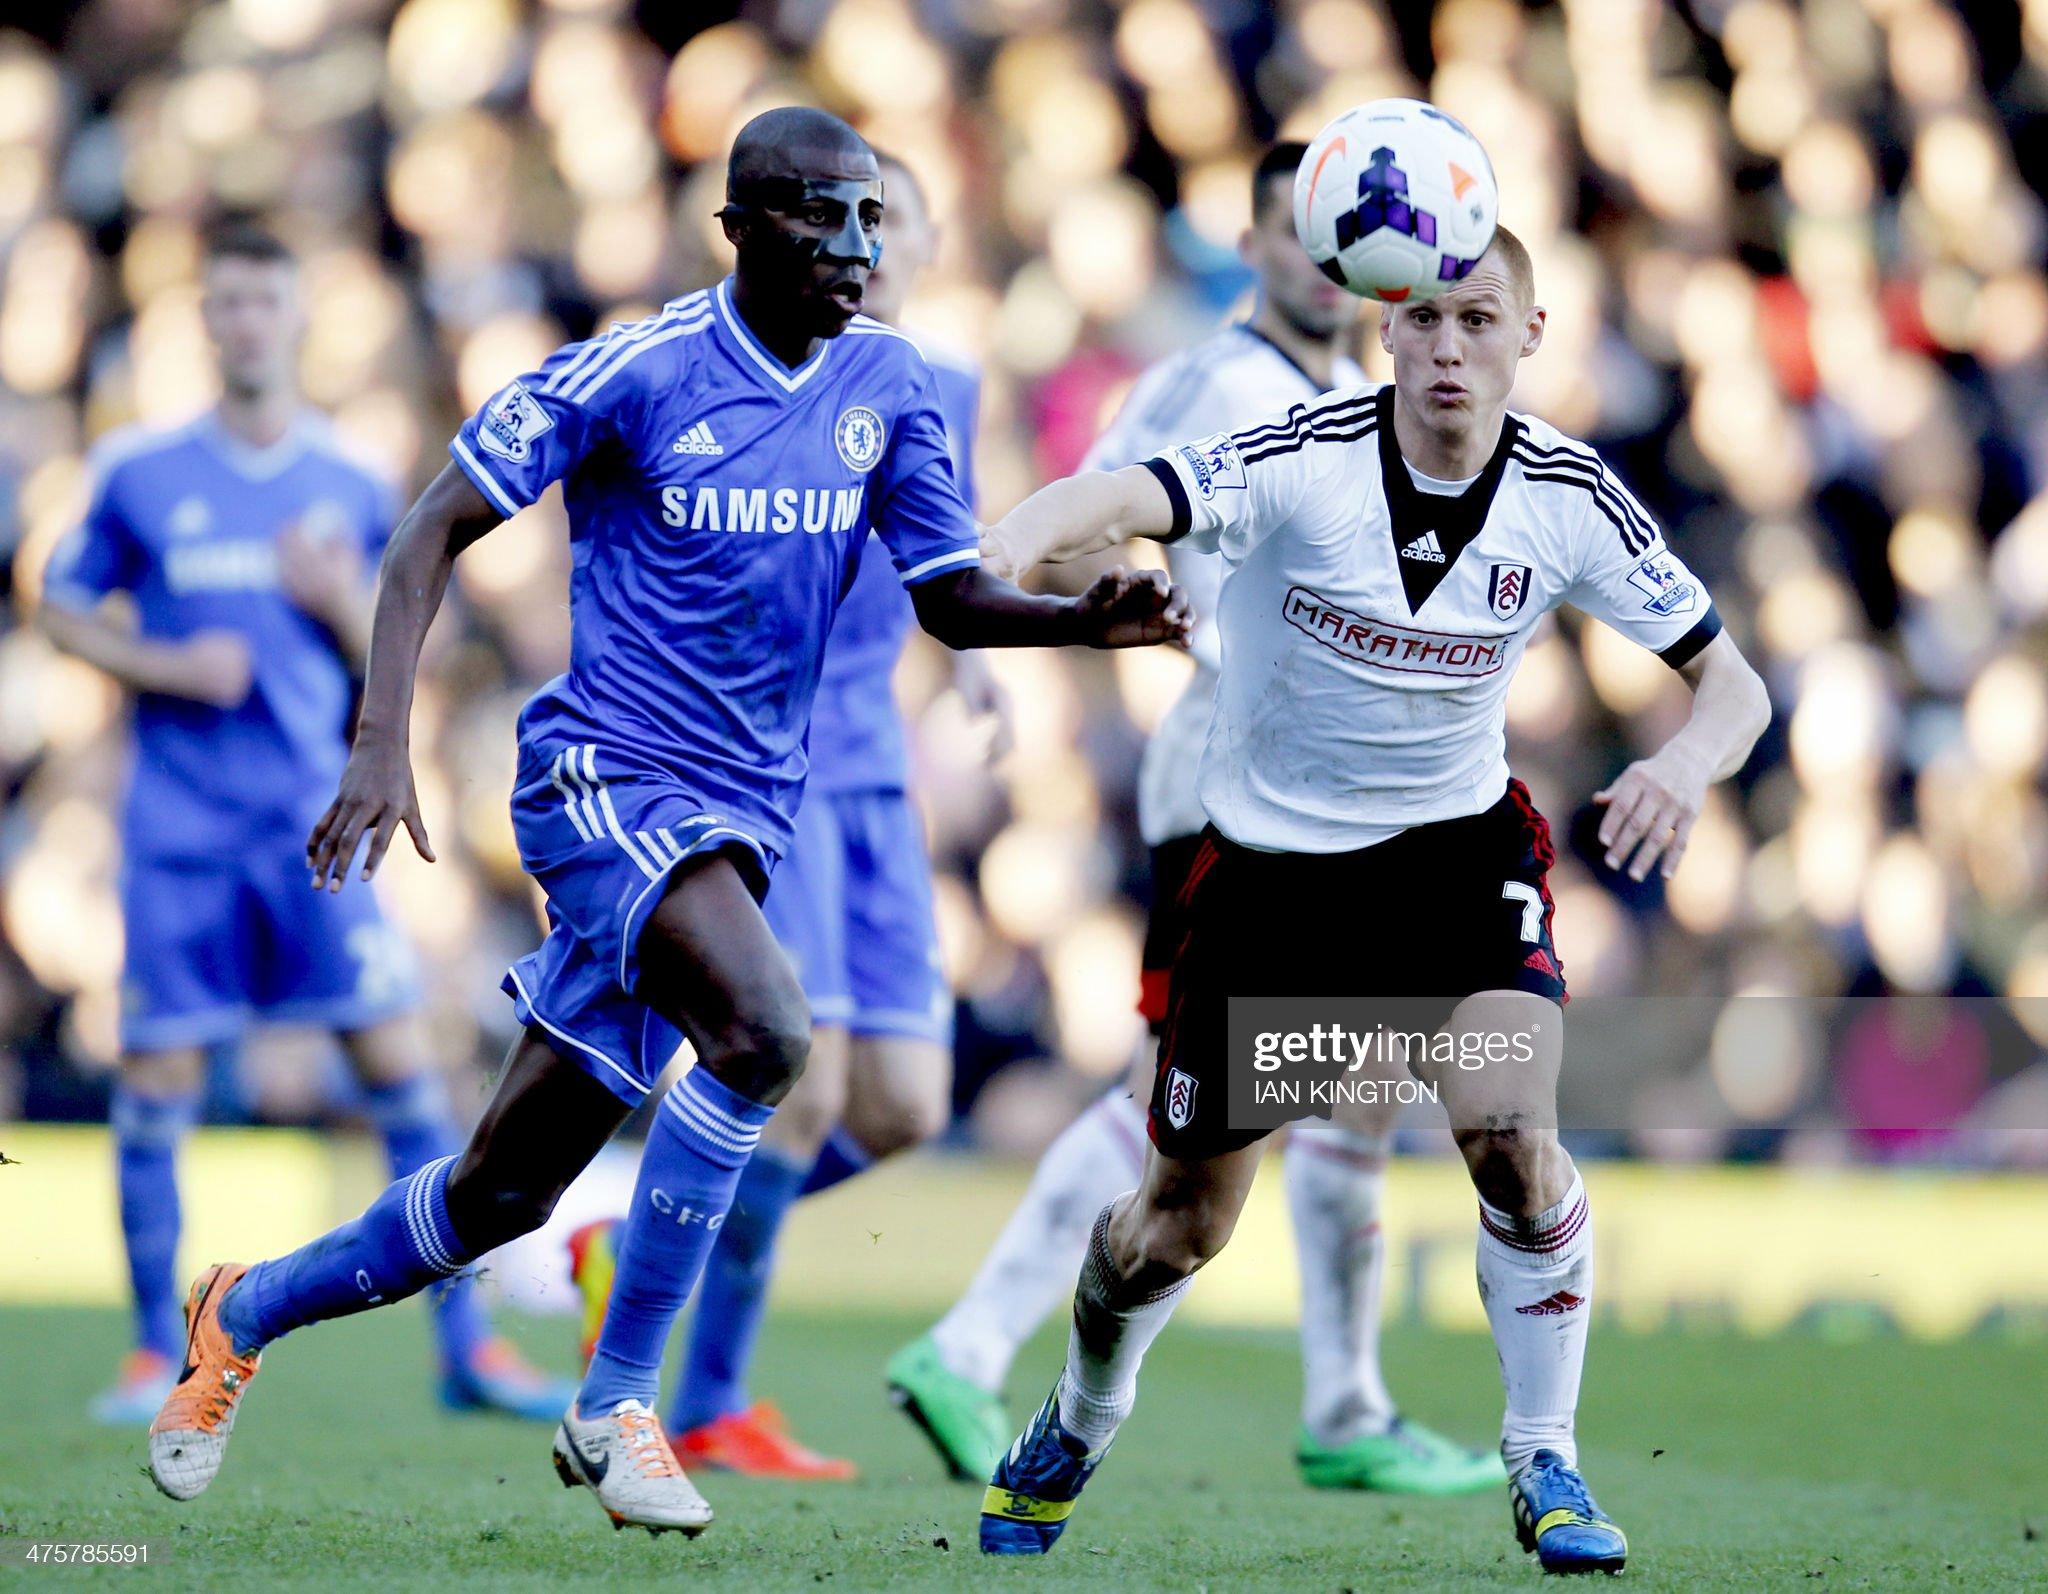 Fulham vs Chelsea preview, prediction and odds